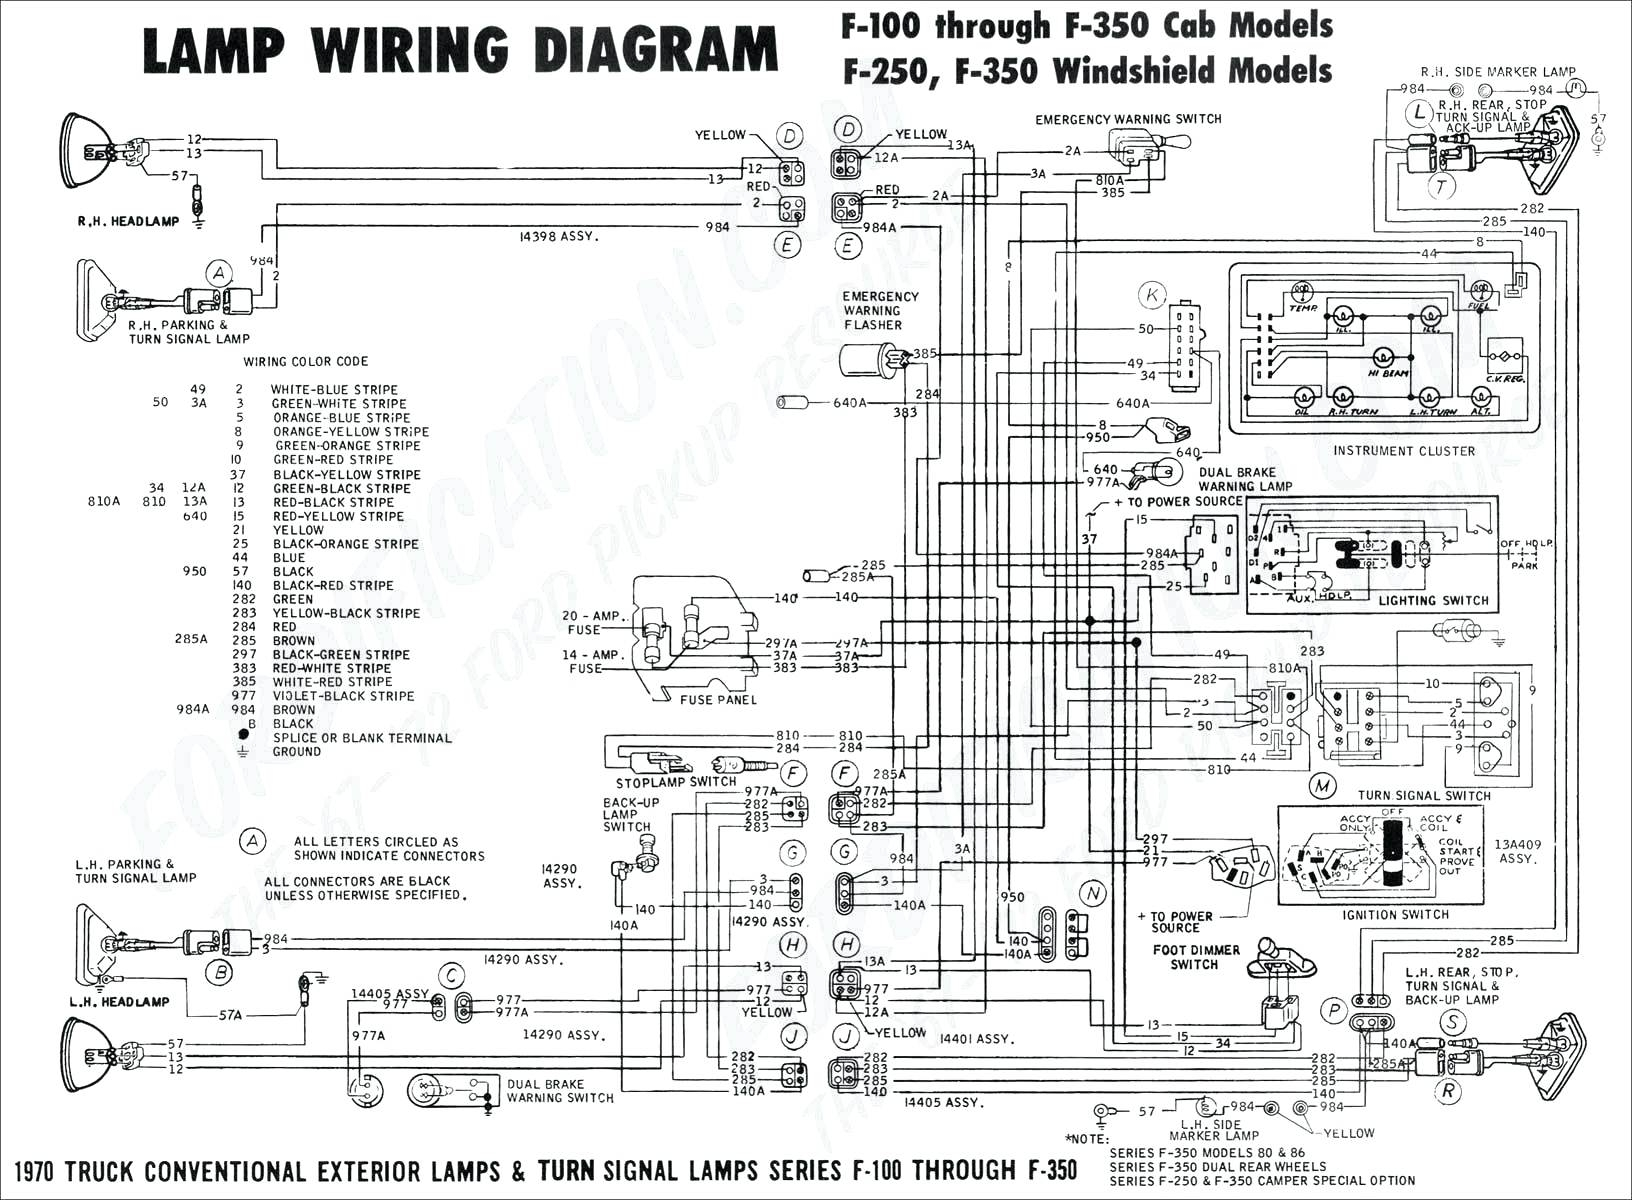 Wiring Diagram For 2017 Ford F 150